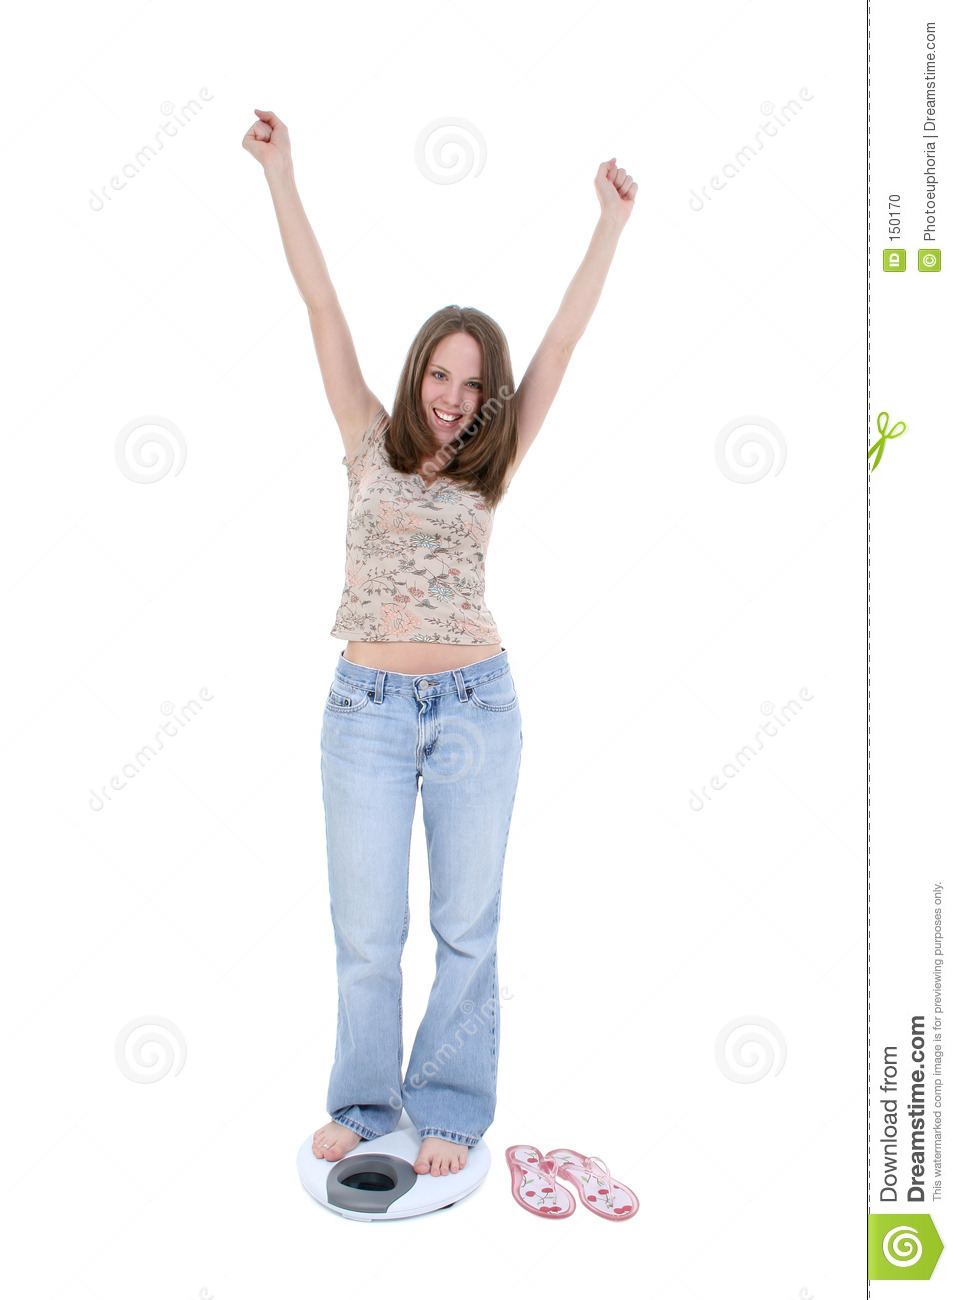 Beautiful Young Woman Standing On Bathroom Scale